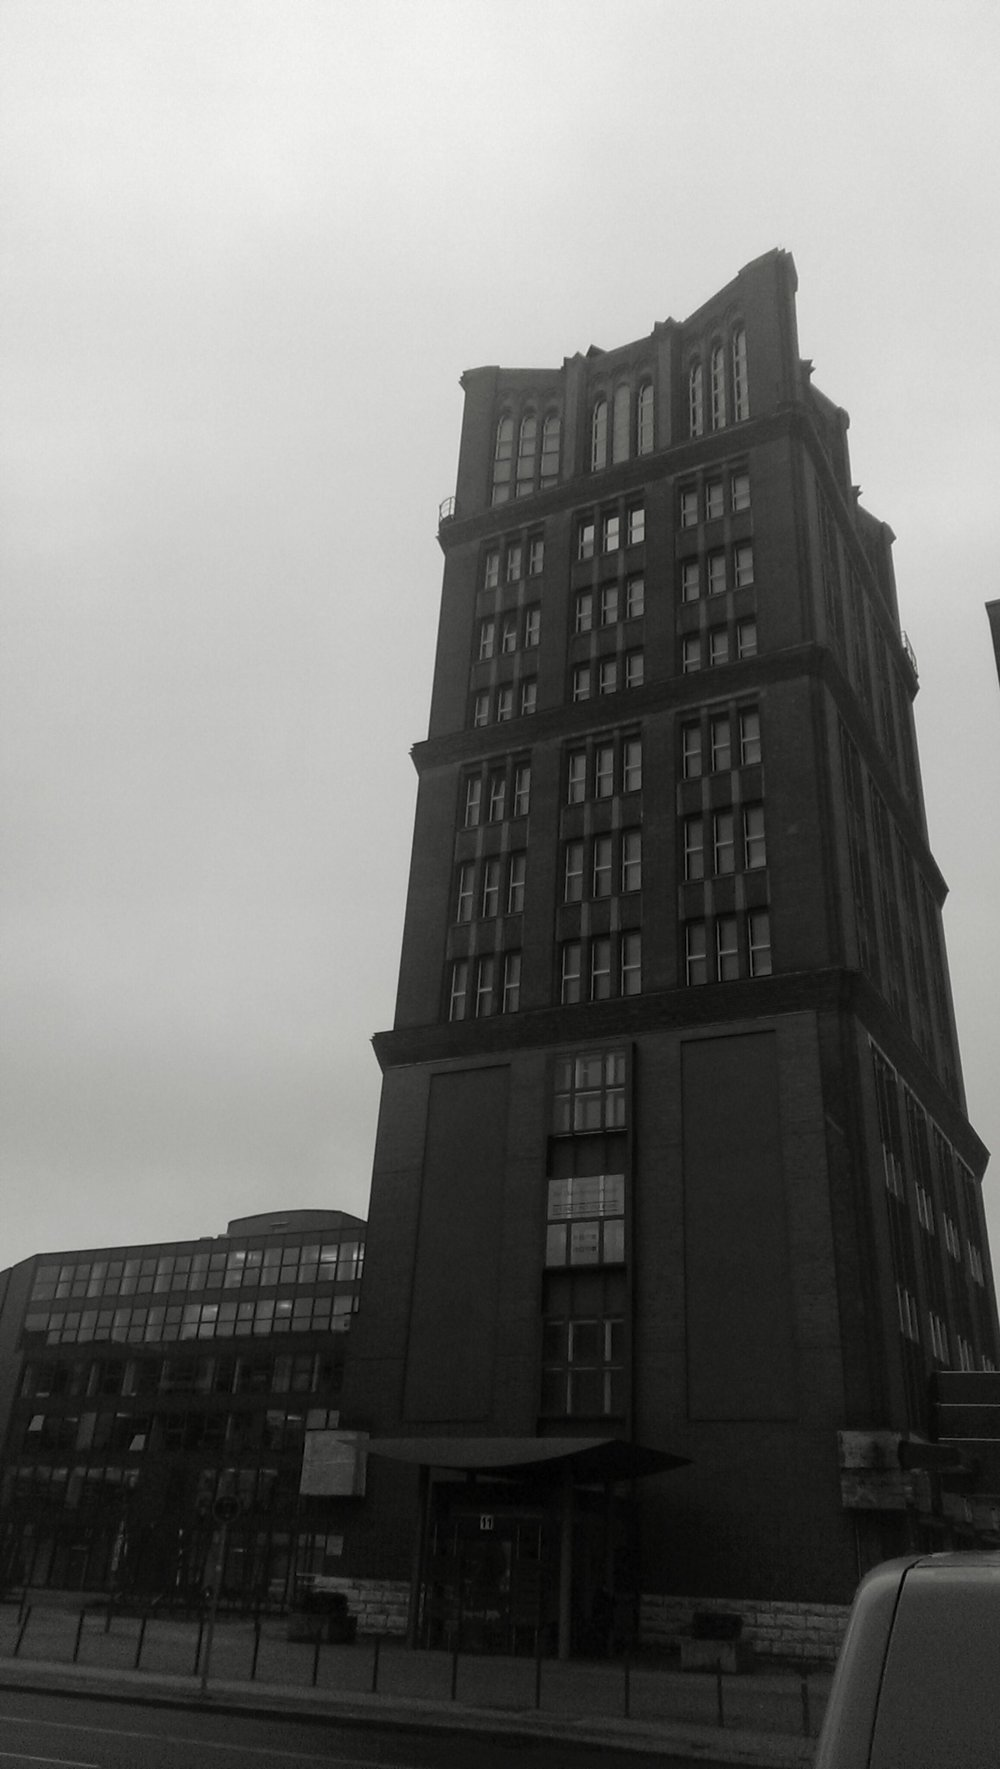 This is the Borsigturm. Built in 1922, it was one of the first skycrapers in Berlin.